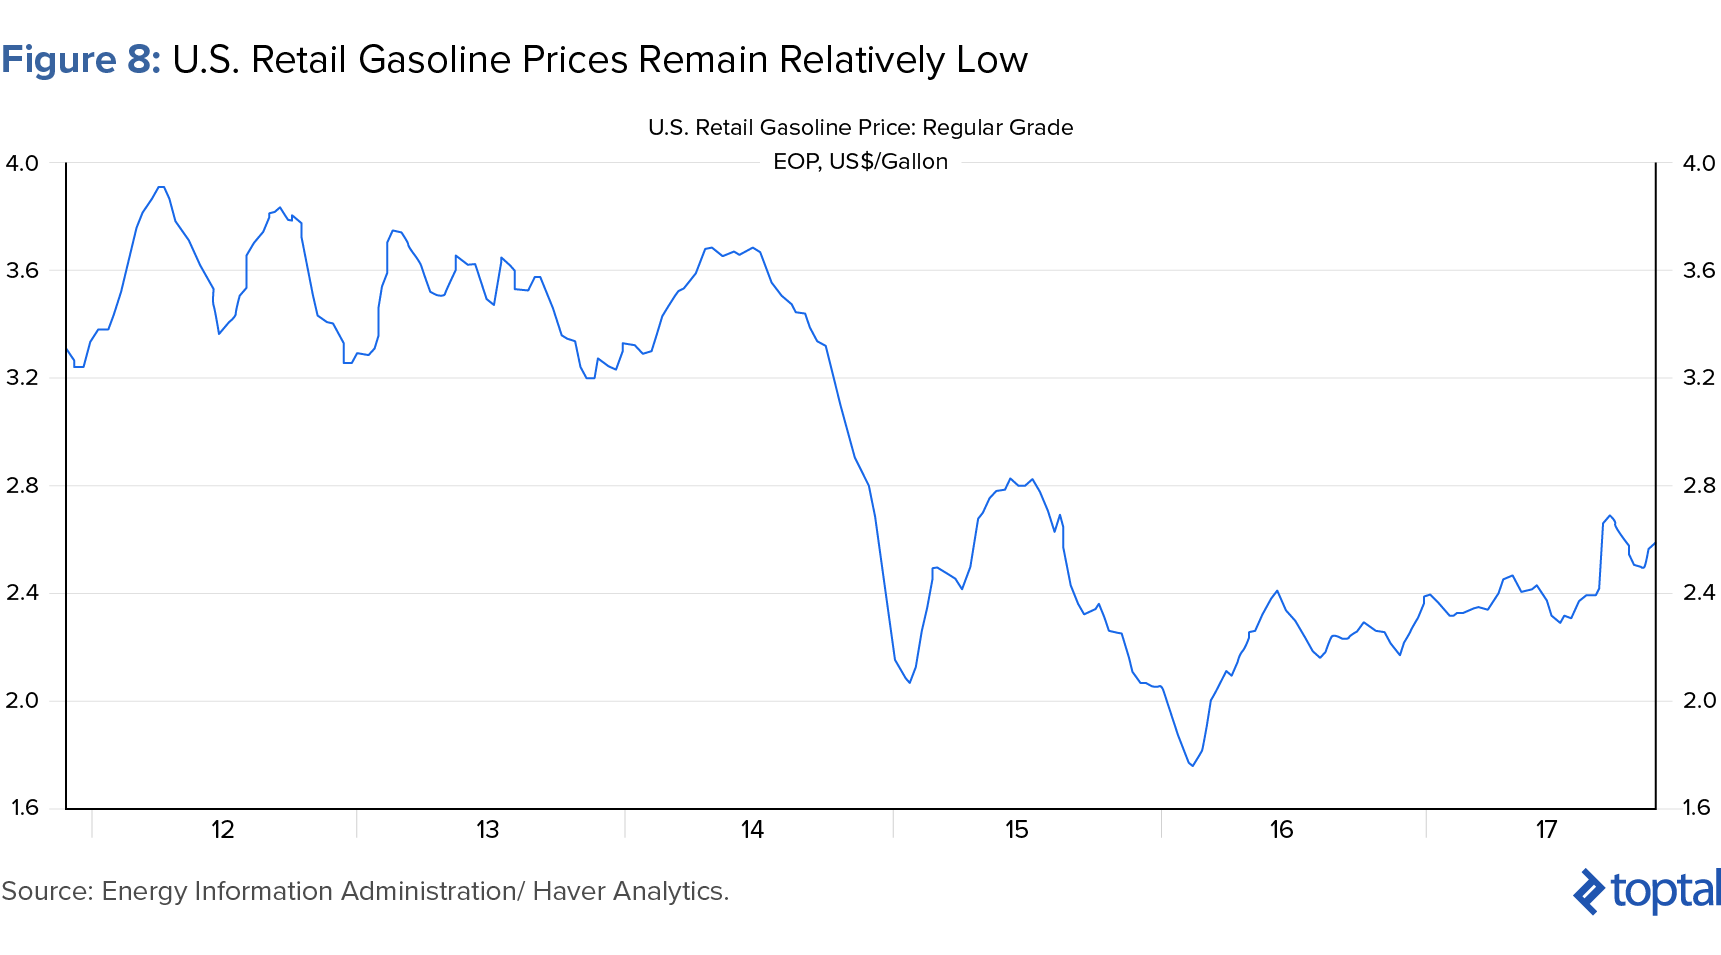 Figure 8: US Retail Gasoline Prices Remain Relatively Low